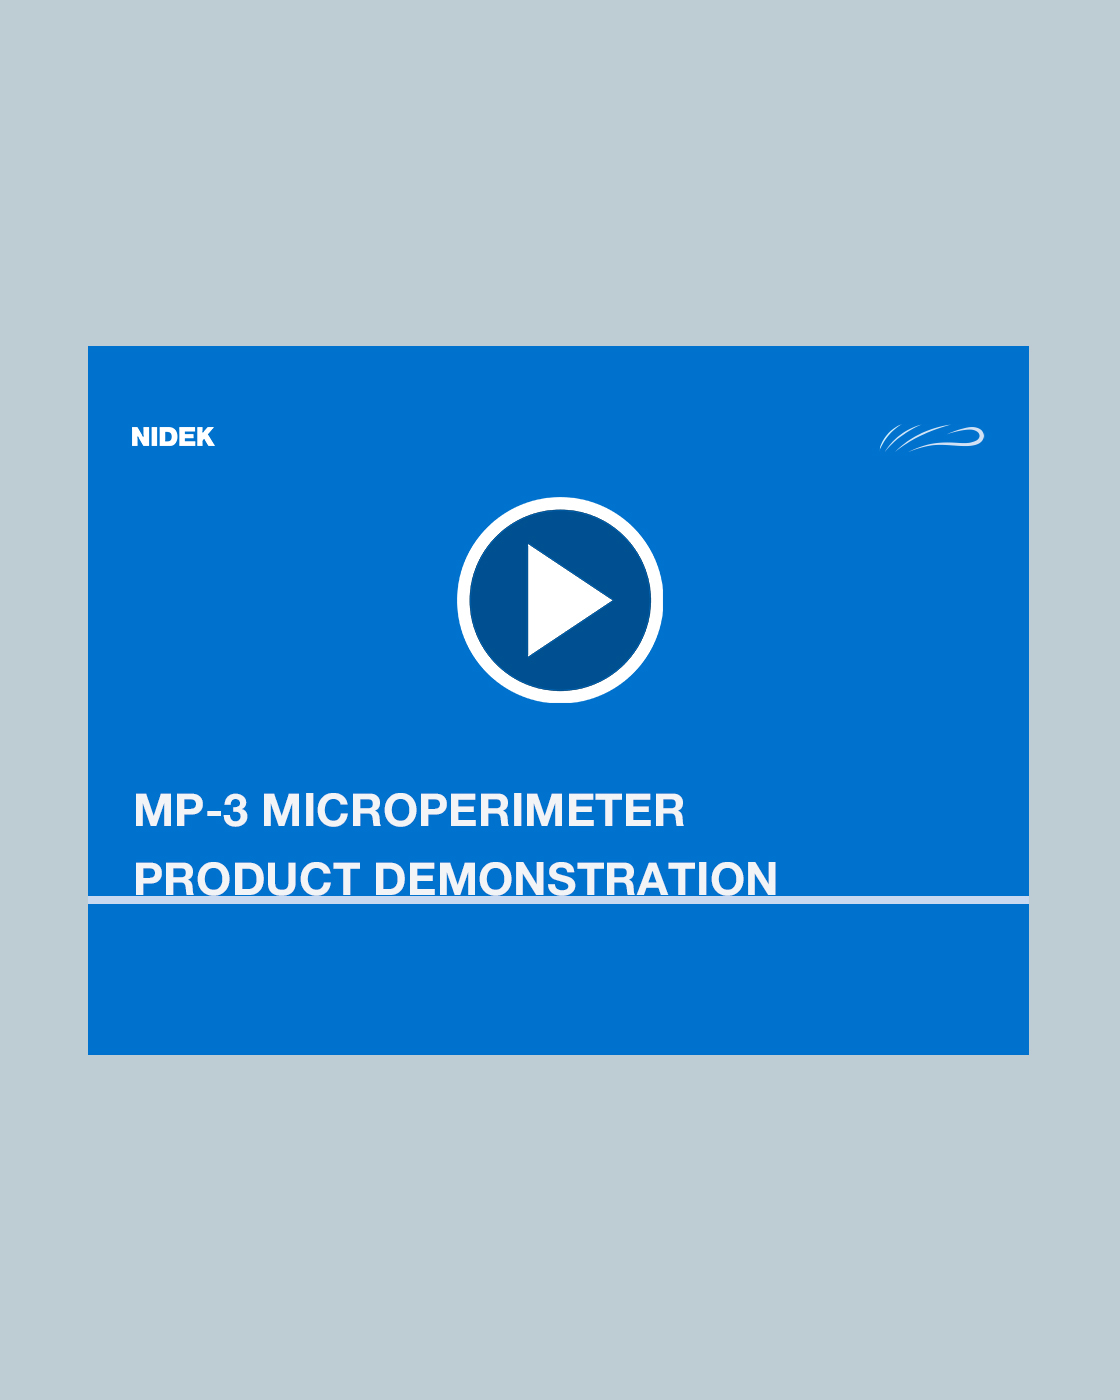 MP-3 Microperimeter Product Demonstration